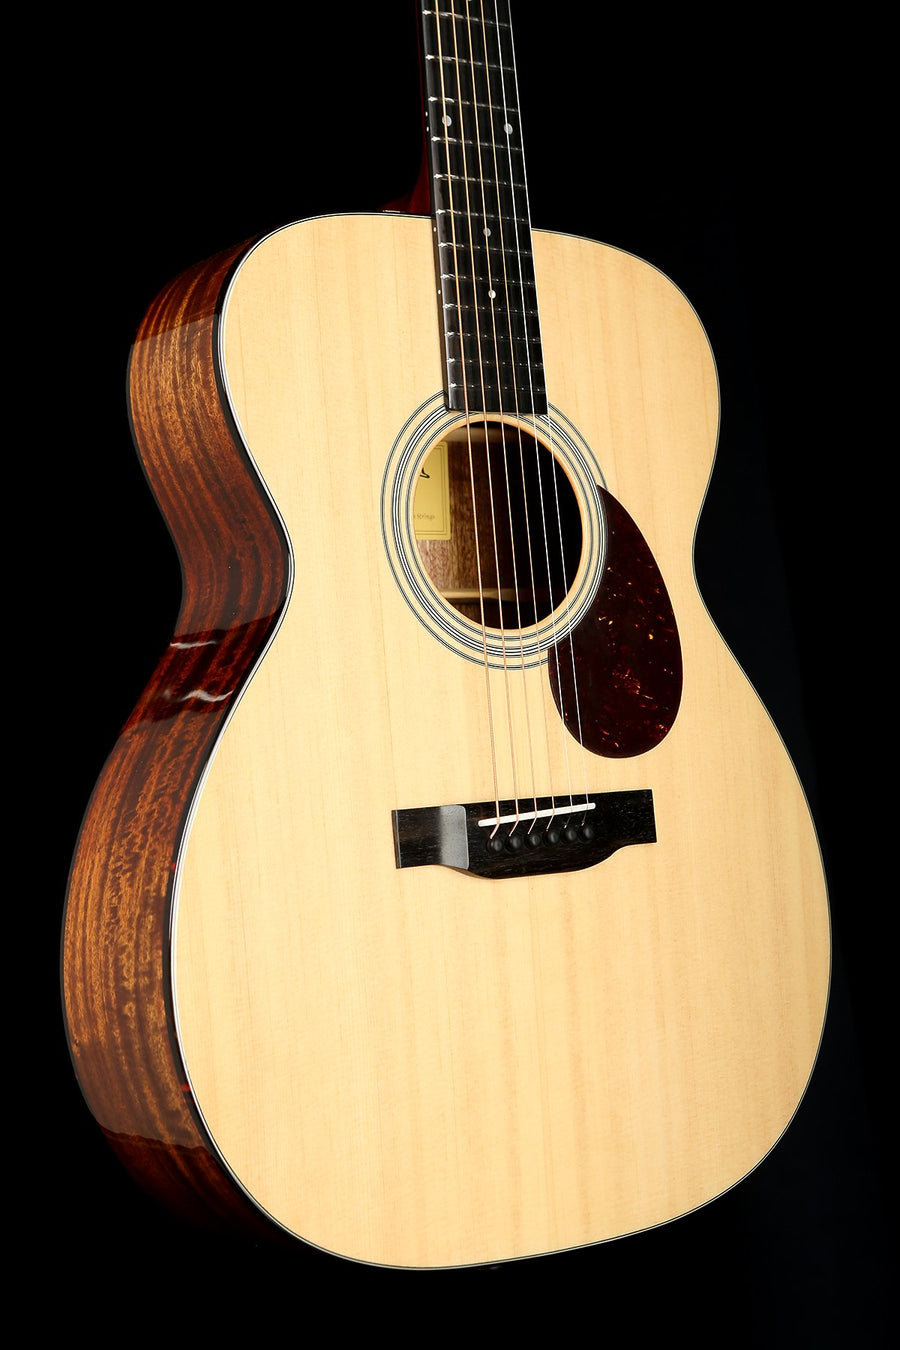 Eastman E6 OM Acoustic Guitar